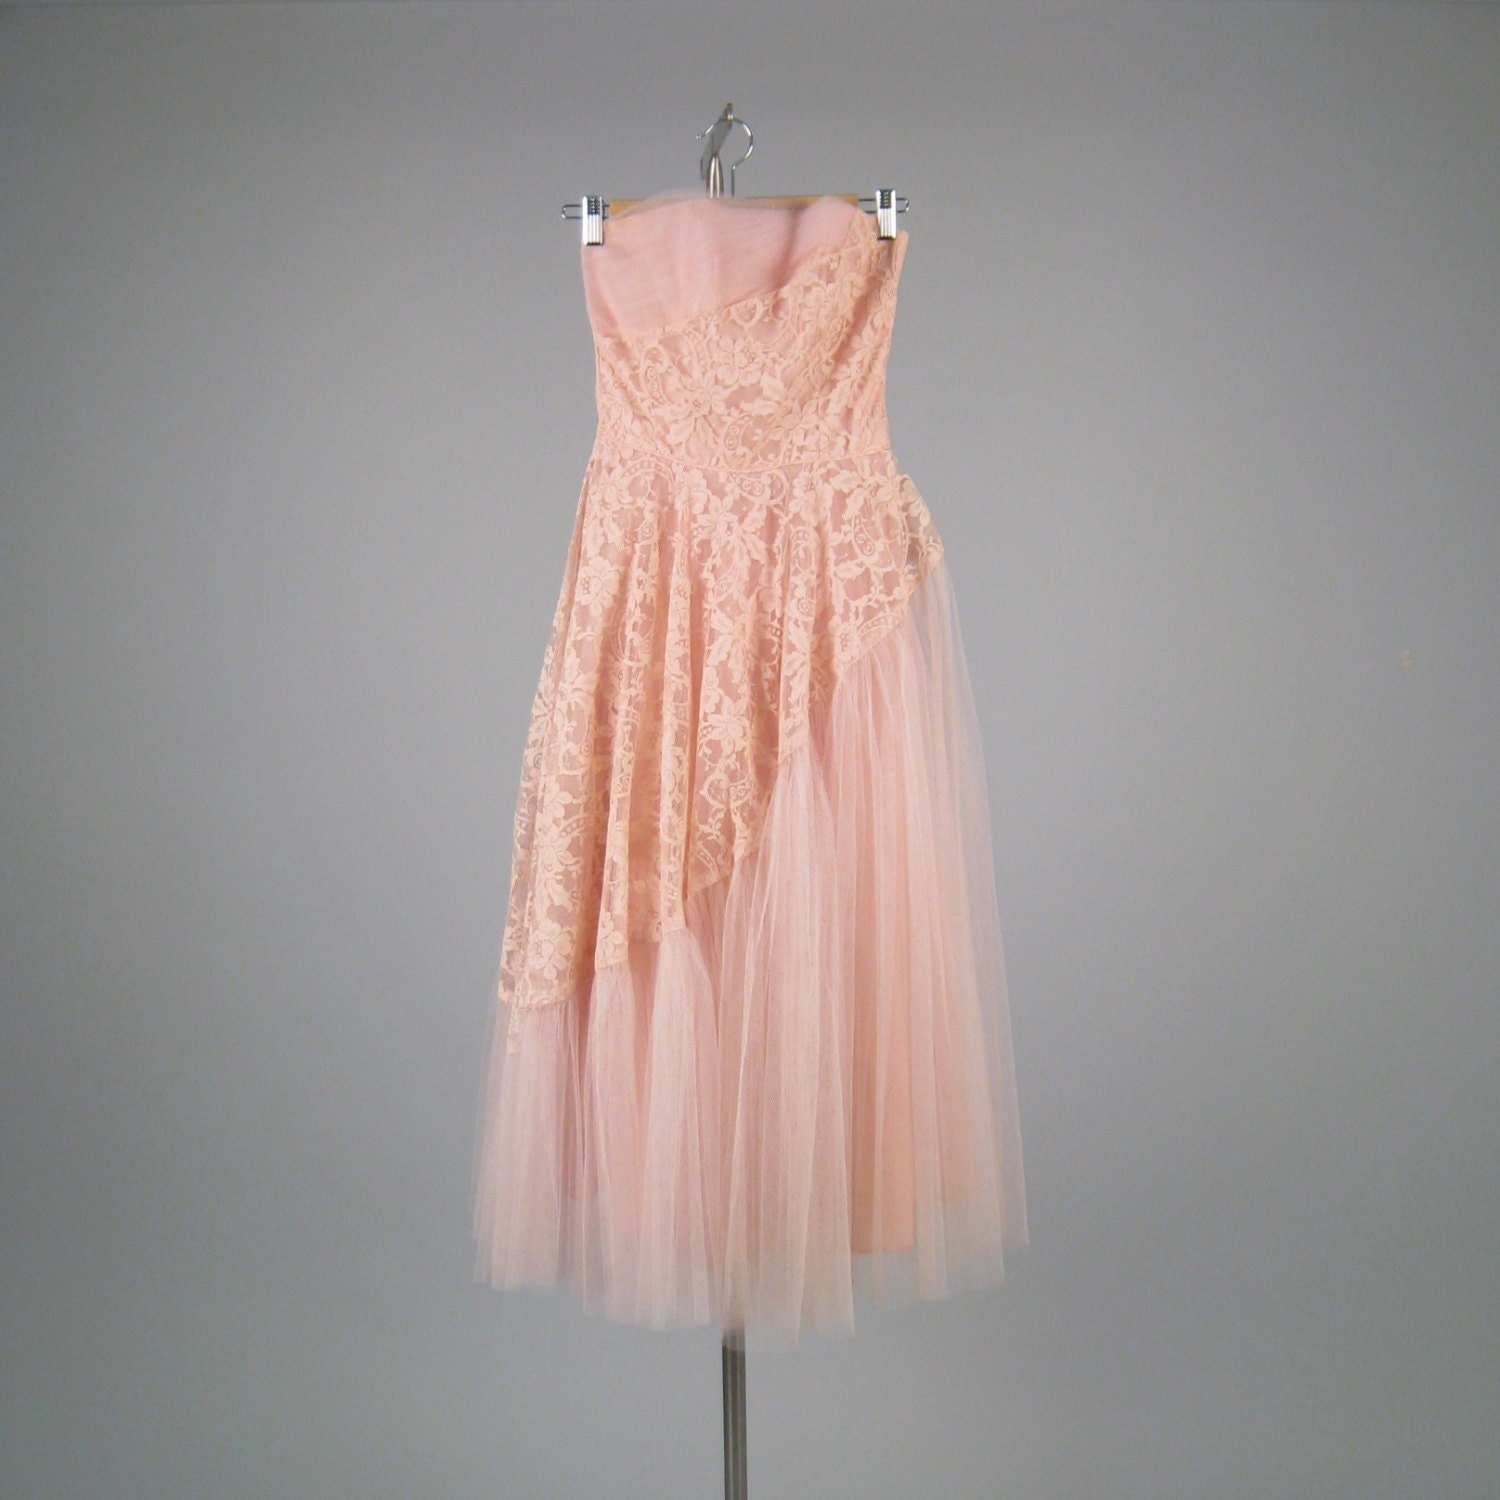 Vintage 1950s bubble gum pink strapless dress